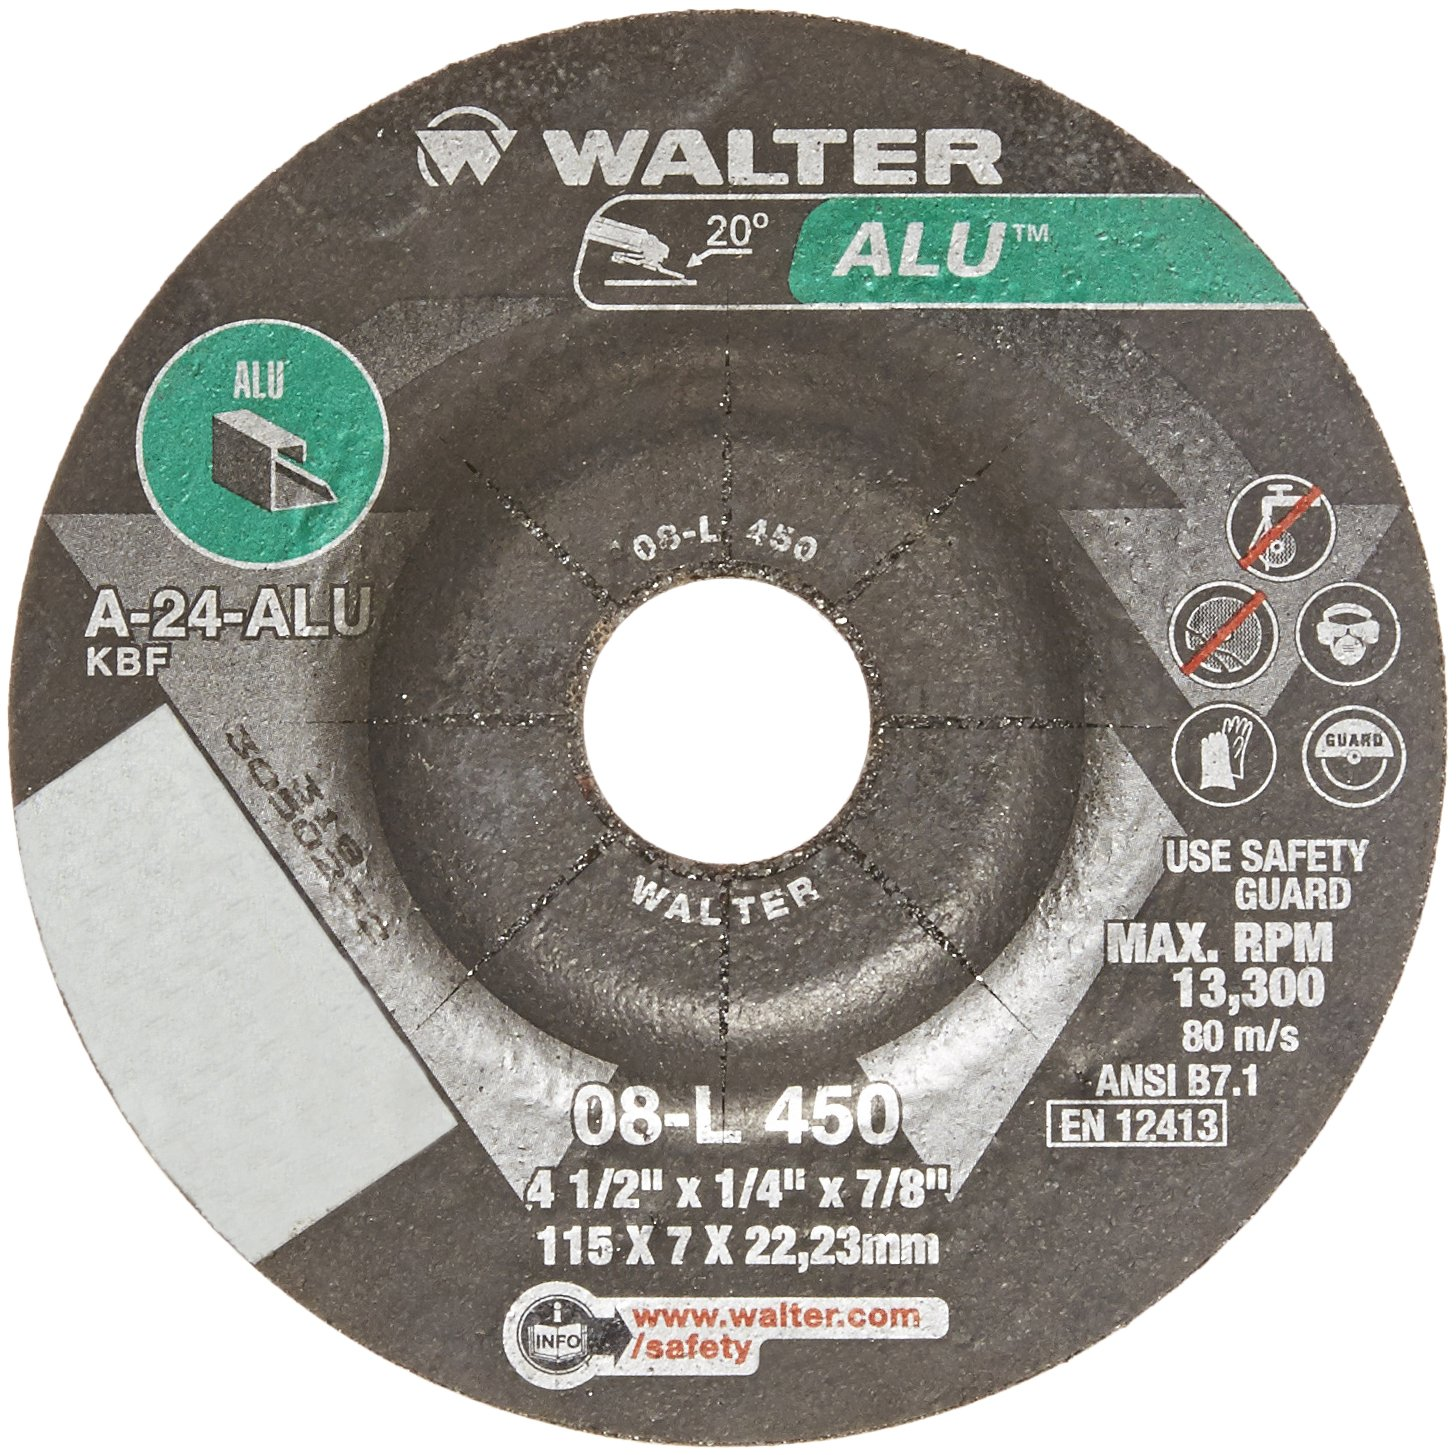 Walter Aluminum Performance Grinding and Cutting Wheel